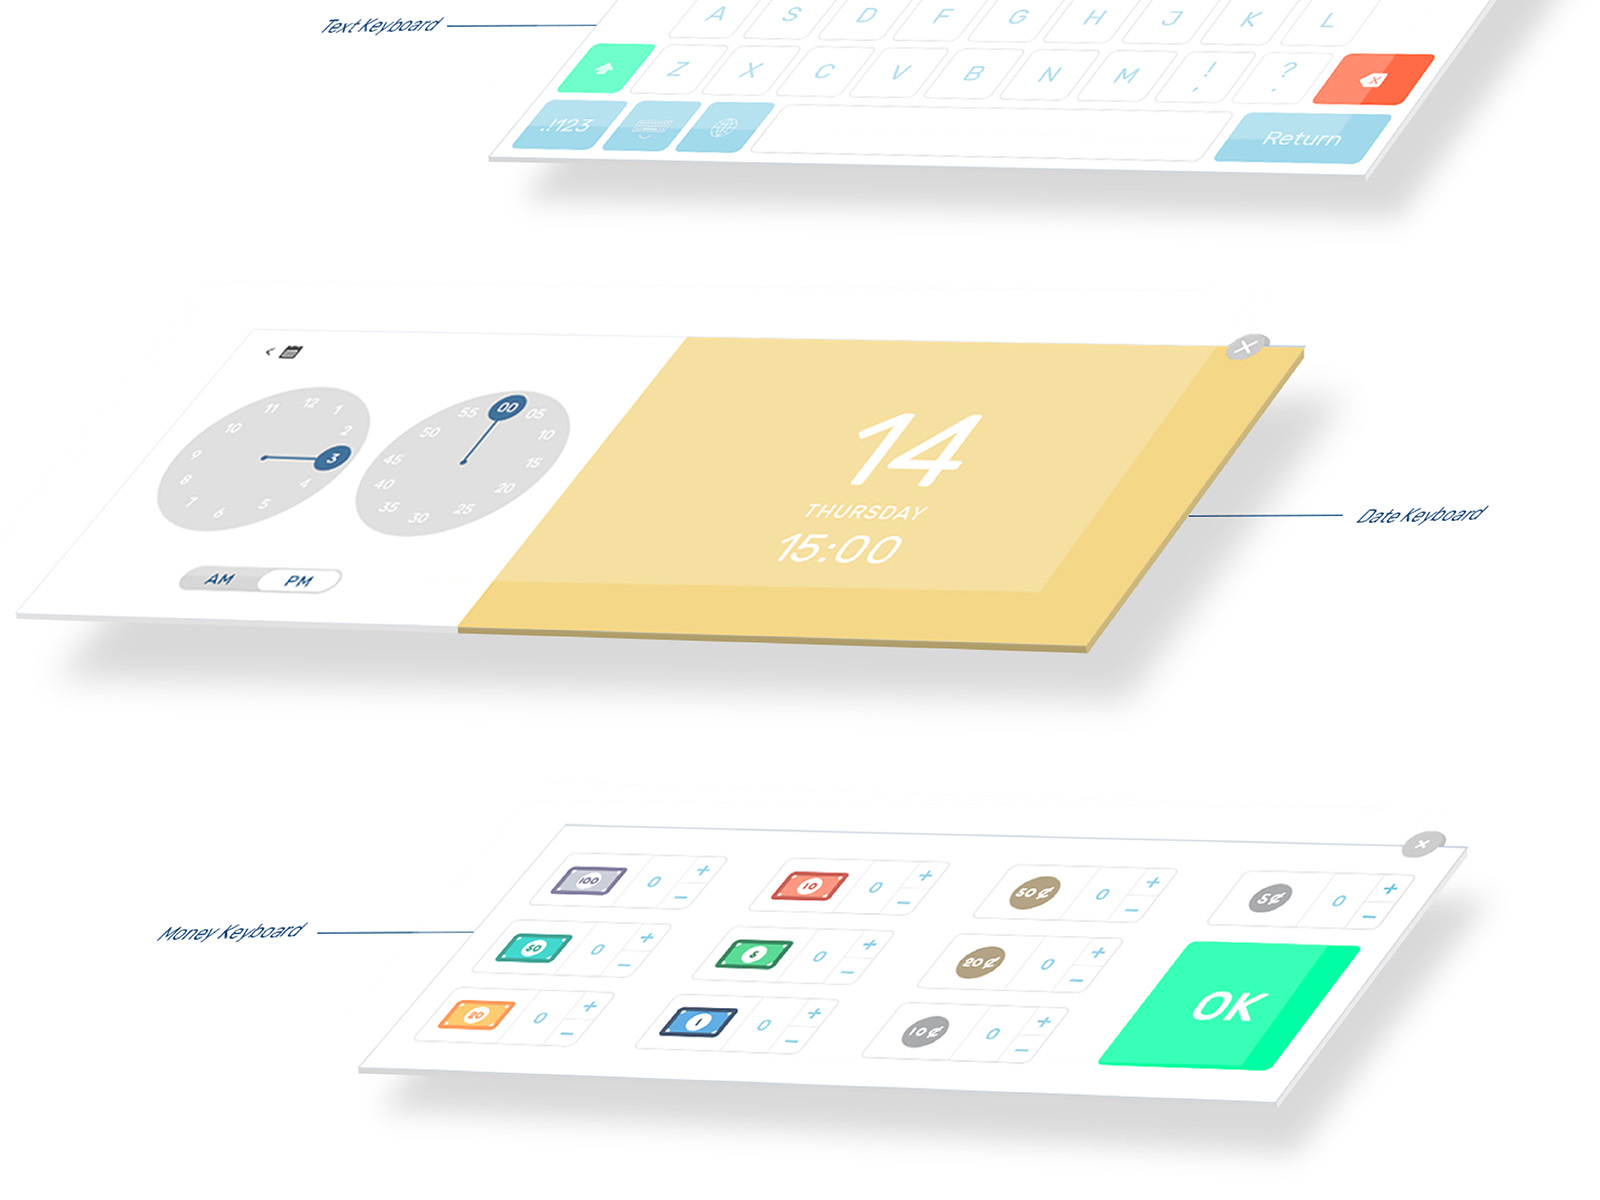 Vipos POS system product user interface and user experience designed screens showing text, date and money keyboard